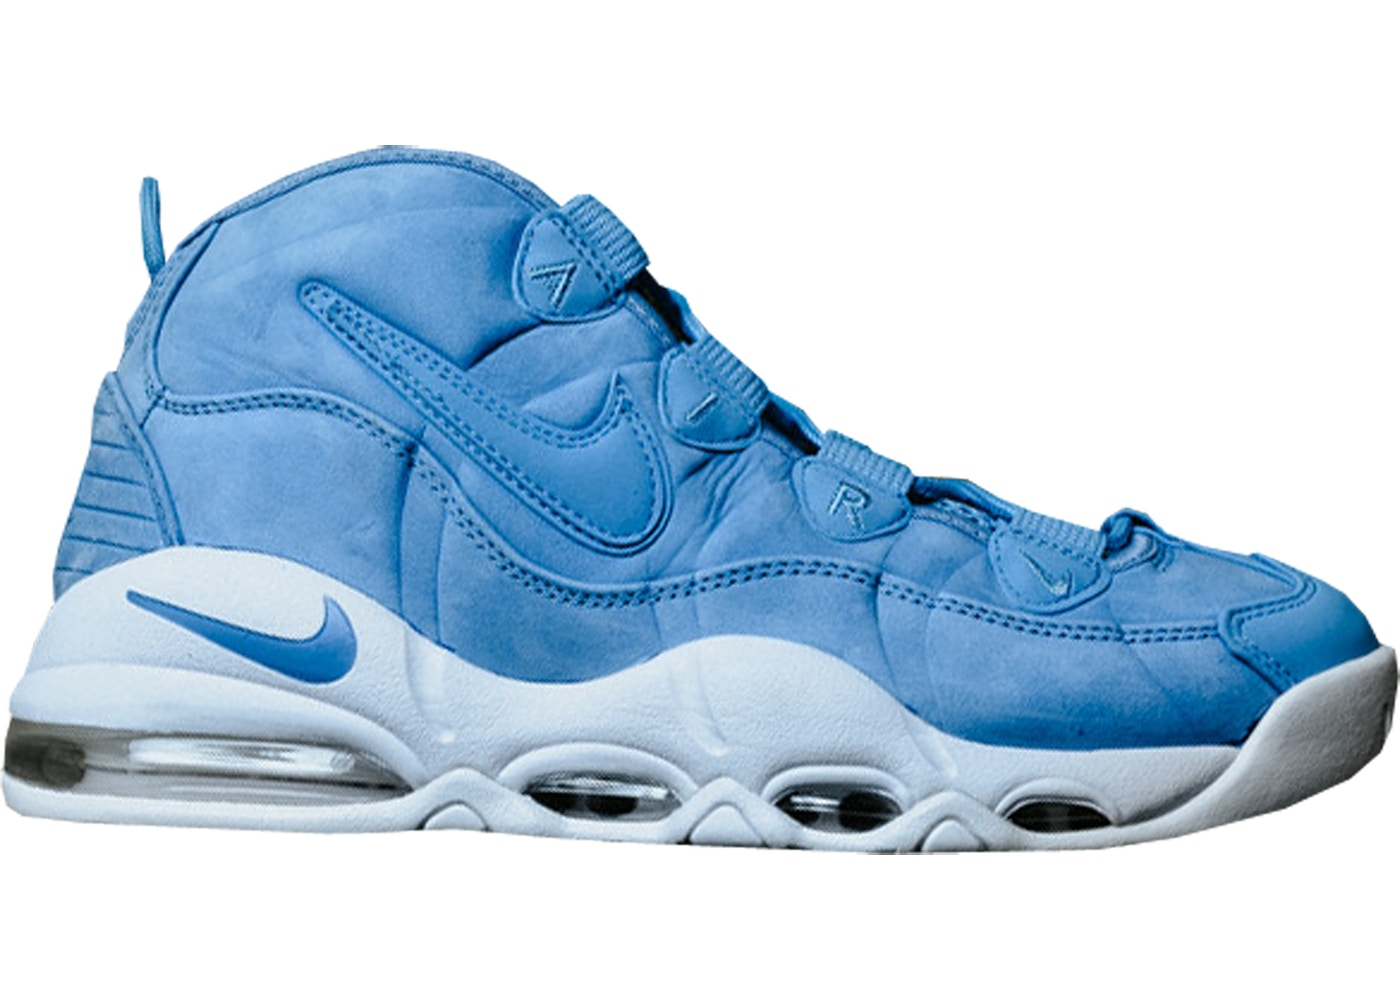 nike air max uptempo 95 for sale